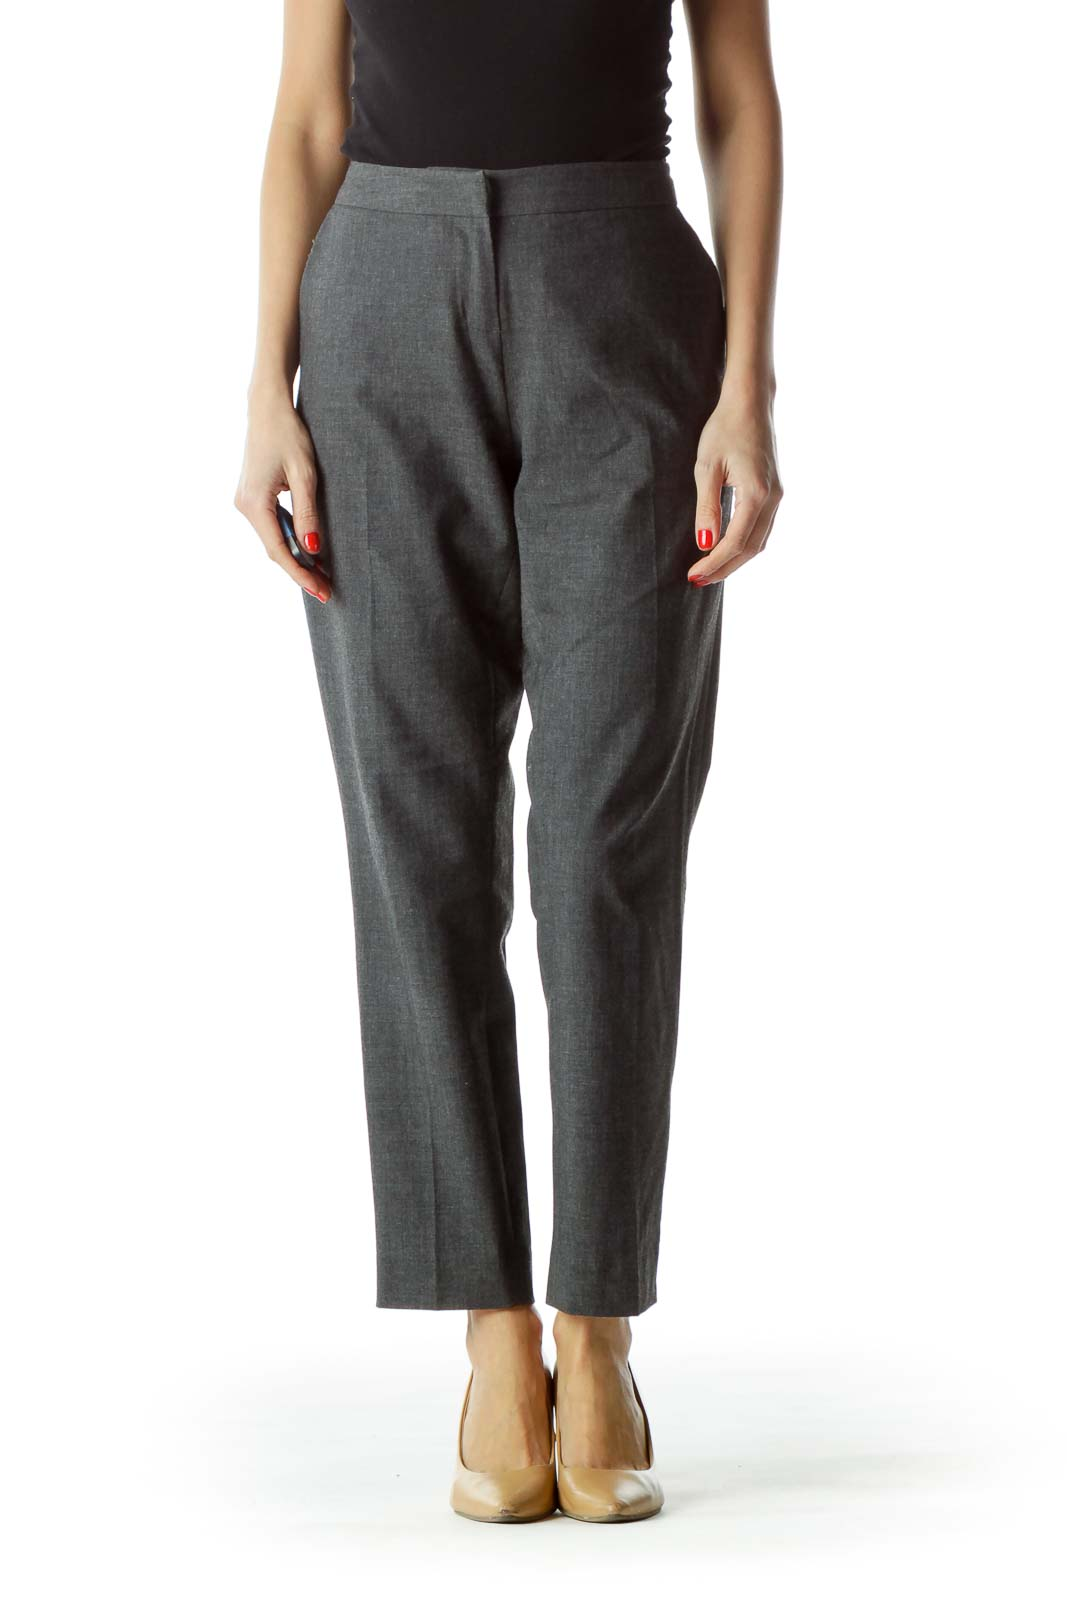 Gray Straight Leg Pocketed Pants